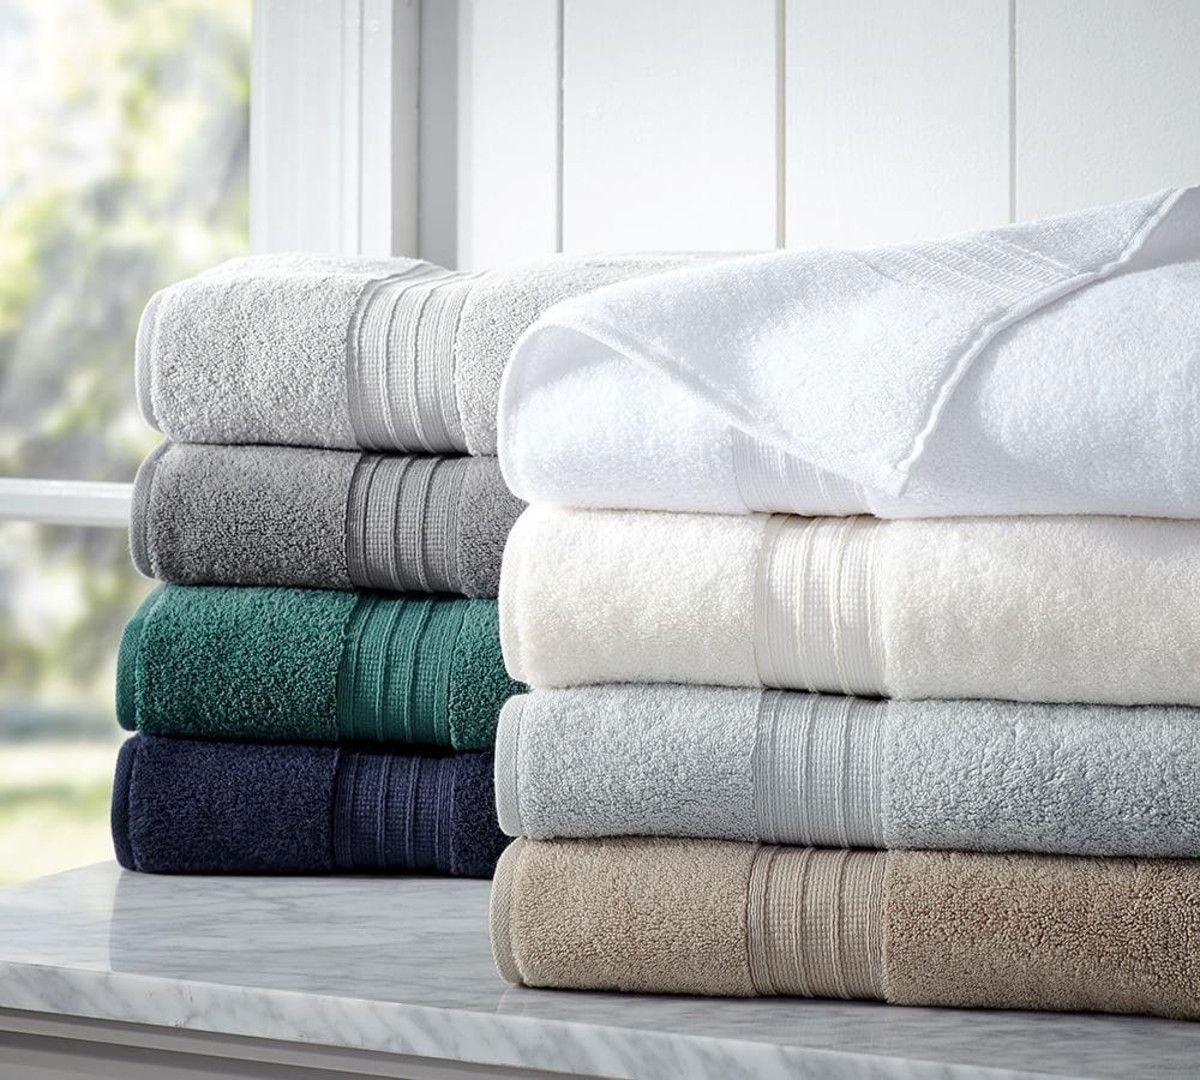 Hydrocotton Bath Towels Custom Hydrocotton Bath Towels  Home  Pinterest  Towels And Bath Inspiration